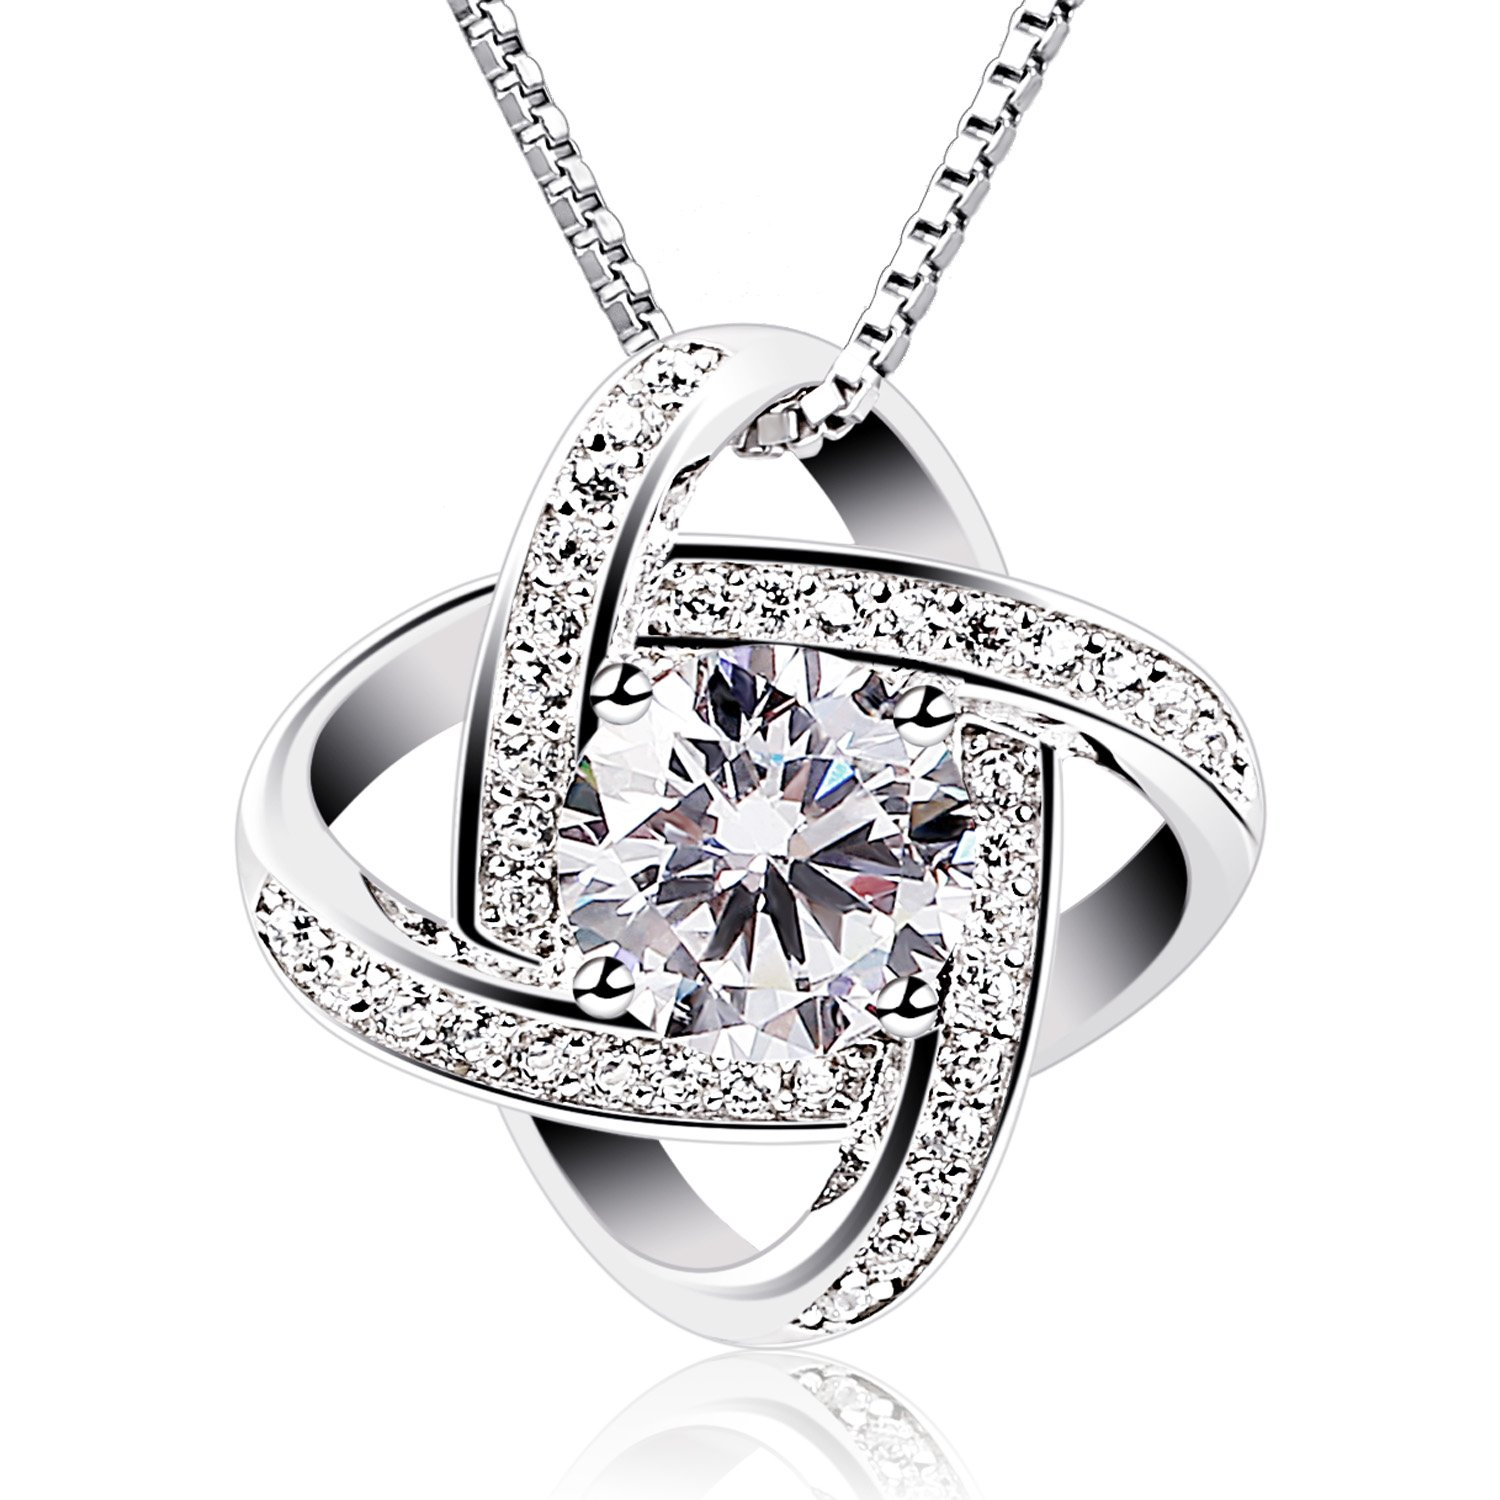 B.Catcher Silver Necklace Womens 925 Silver Cubic Zirconia Pendant Gemini Necklace Mother's Day Gift